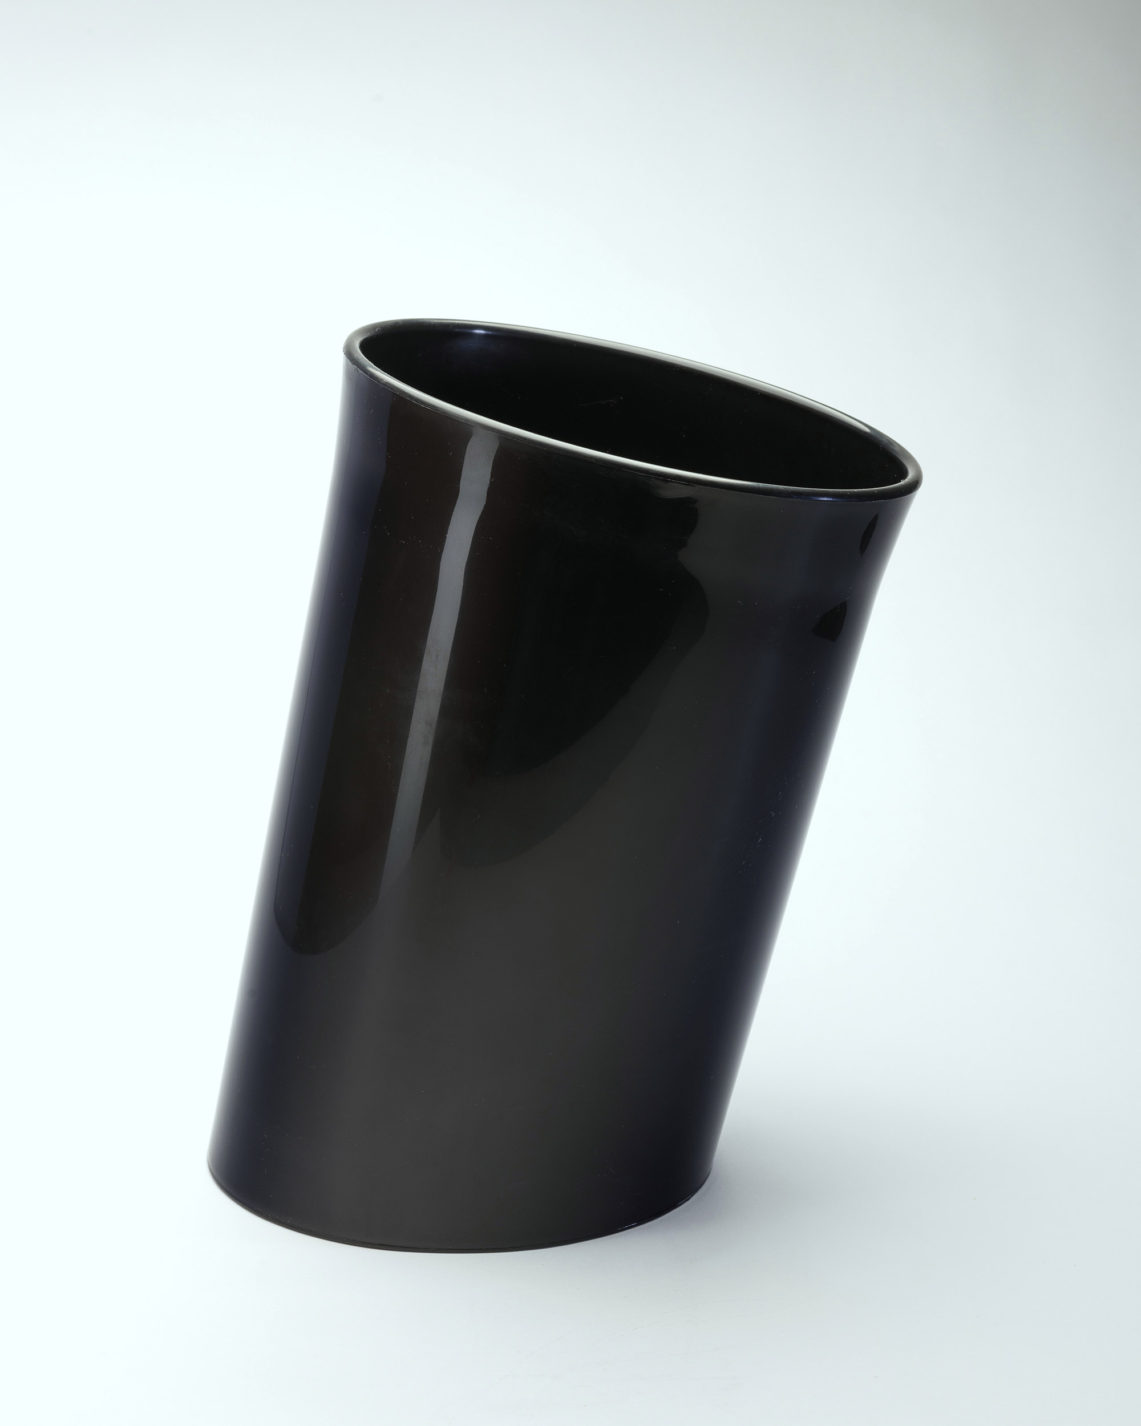 Slanted cylindrical waste basket in black plastic.